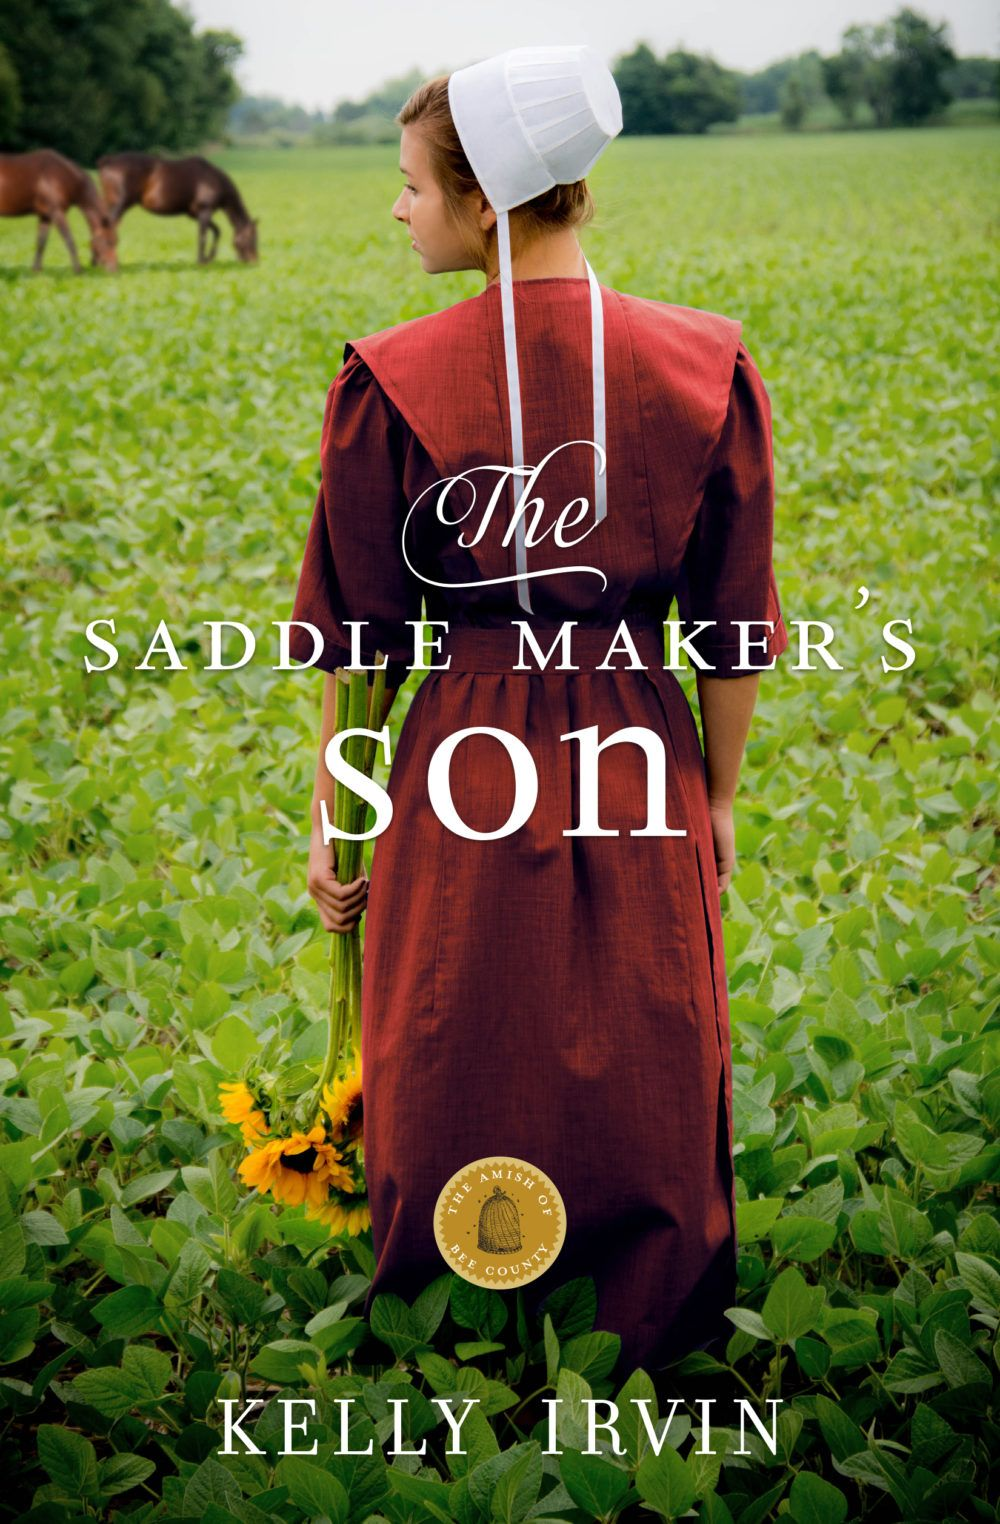 Discover Kelly Irvin's favorite movie (and add your vote), the recipe for  her favorite gingersnaps, and her new novel, The Saddle Maker's Son (Amish  of Bee ...